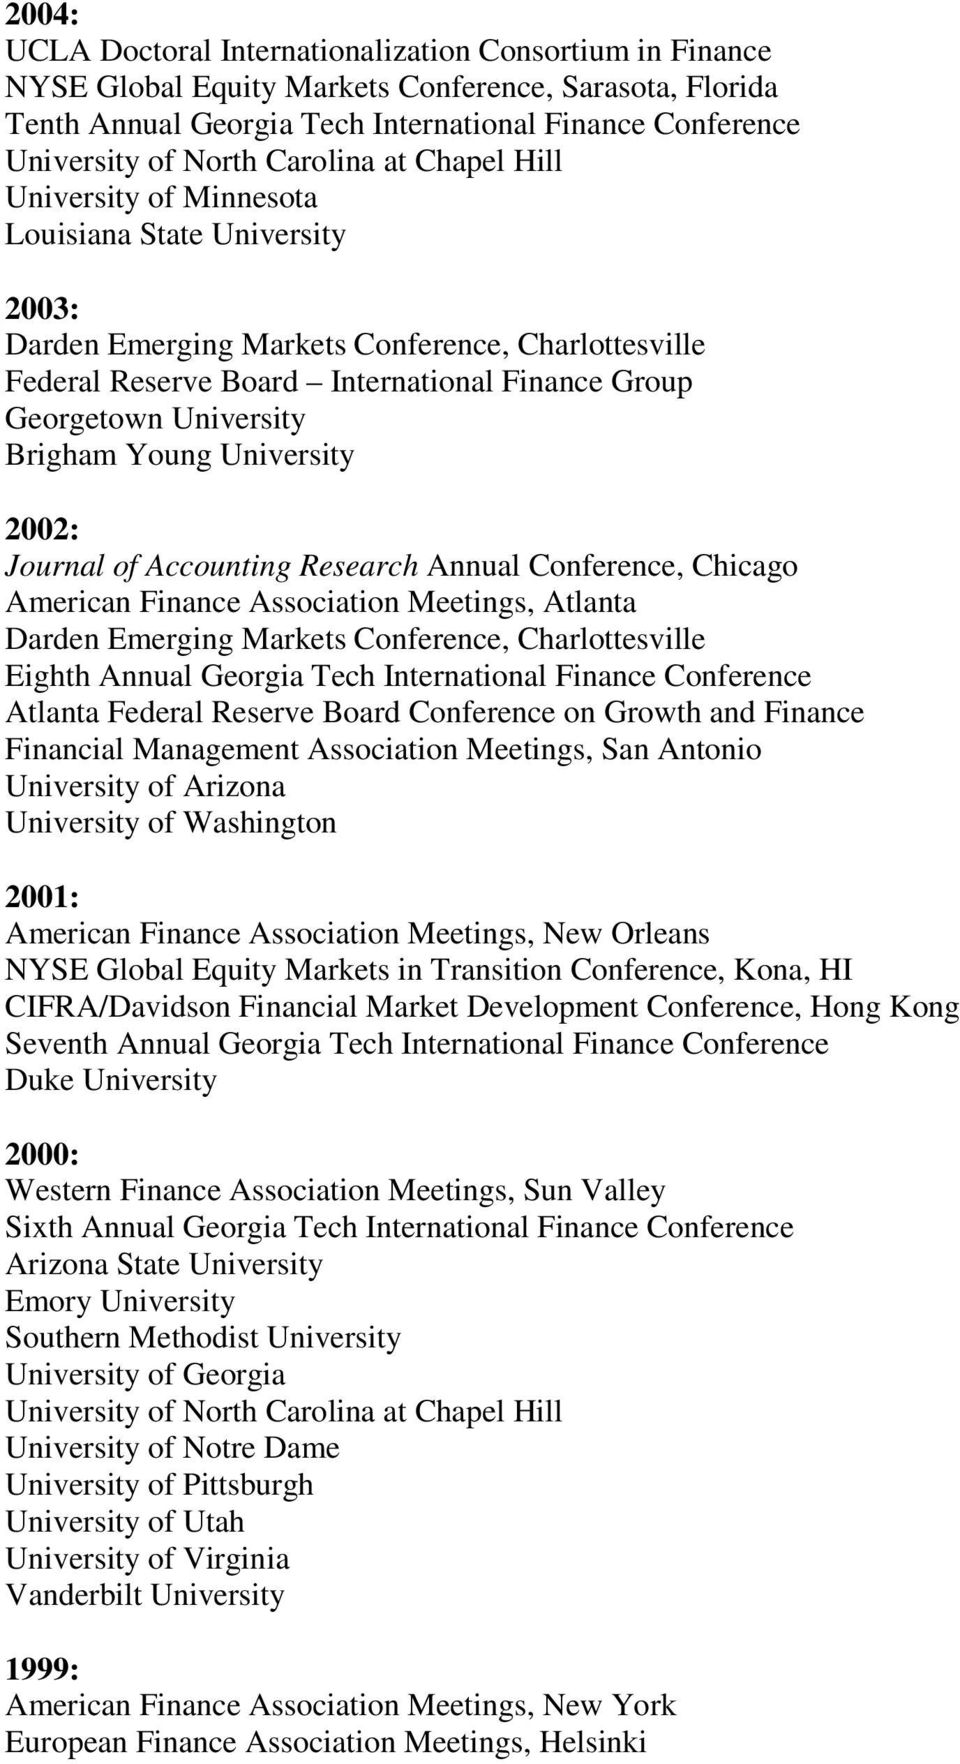 Journal of Accounting Research Annual Conference, Chicago American Finance Association Meetings, Atlanta Darden Emerging Markets Conference, Charlottesville Eighth Annual Georgia Tech International